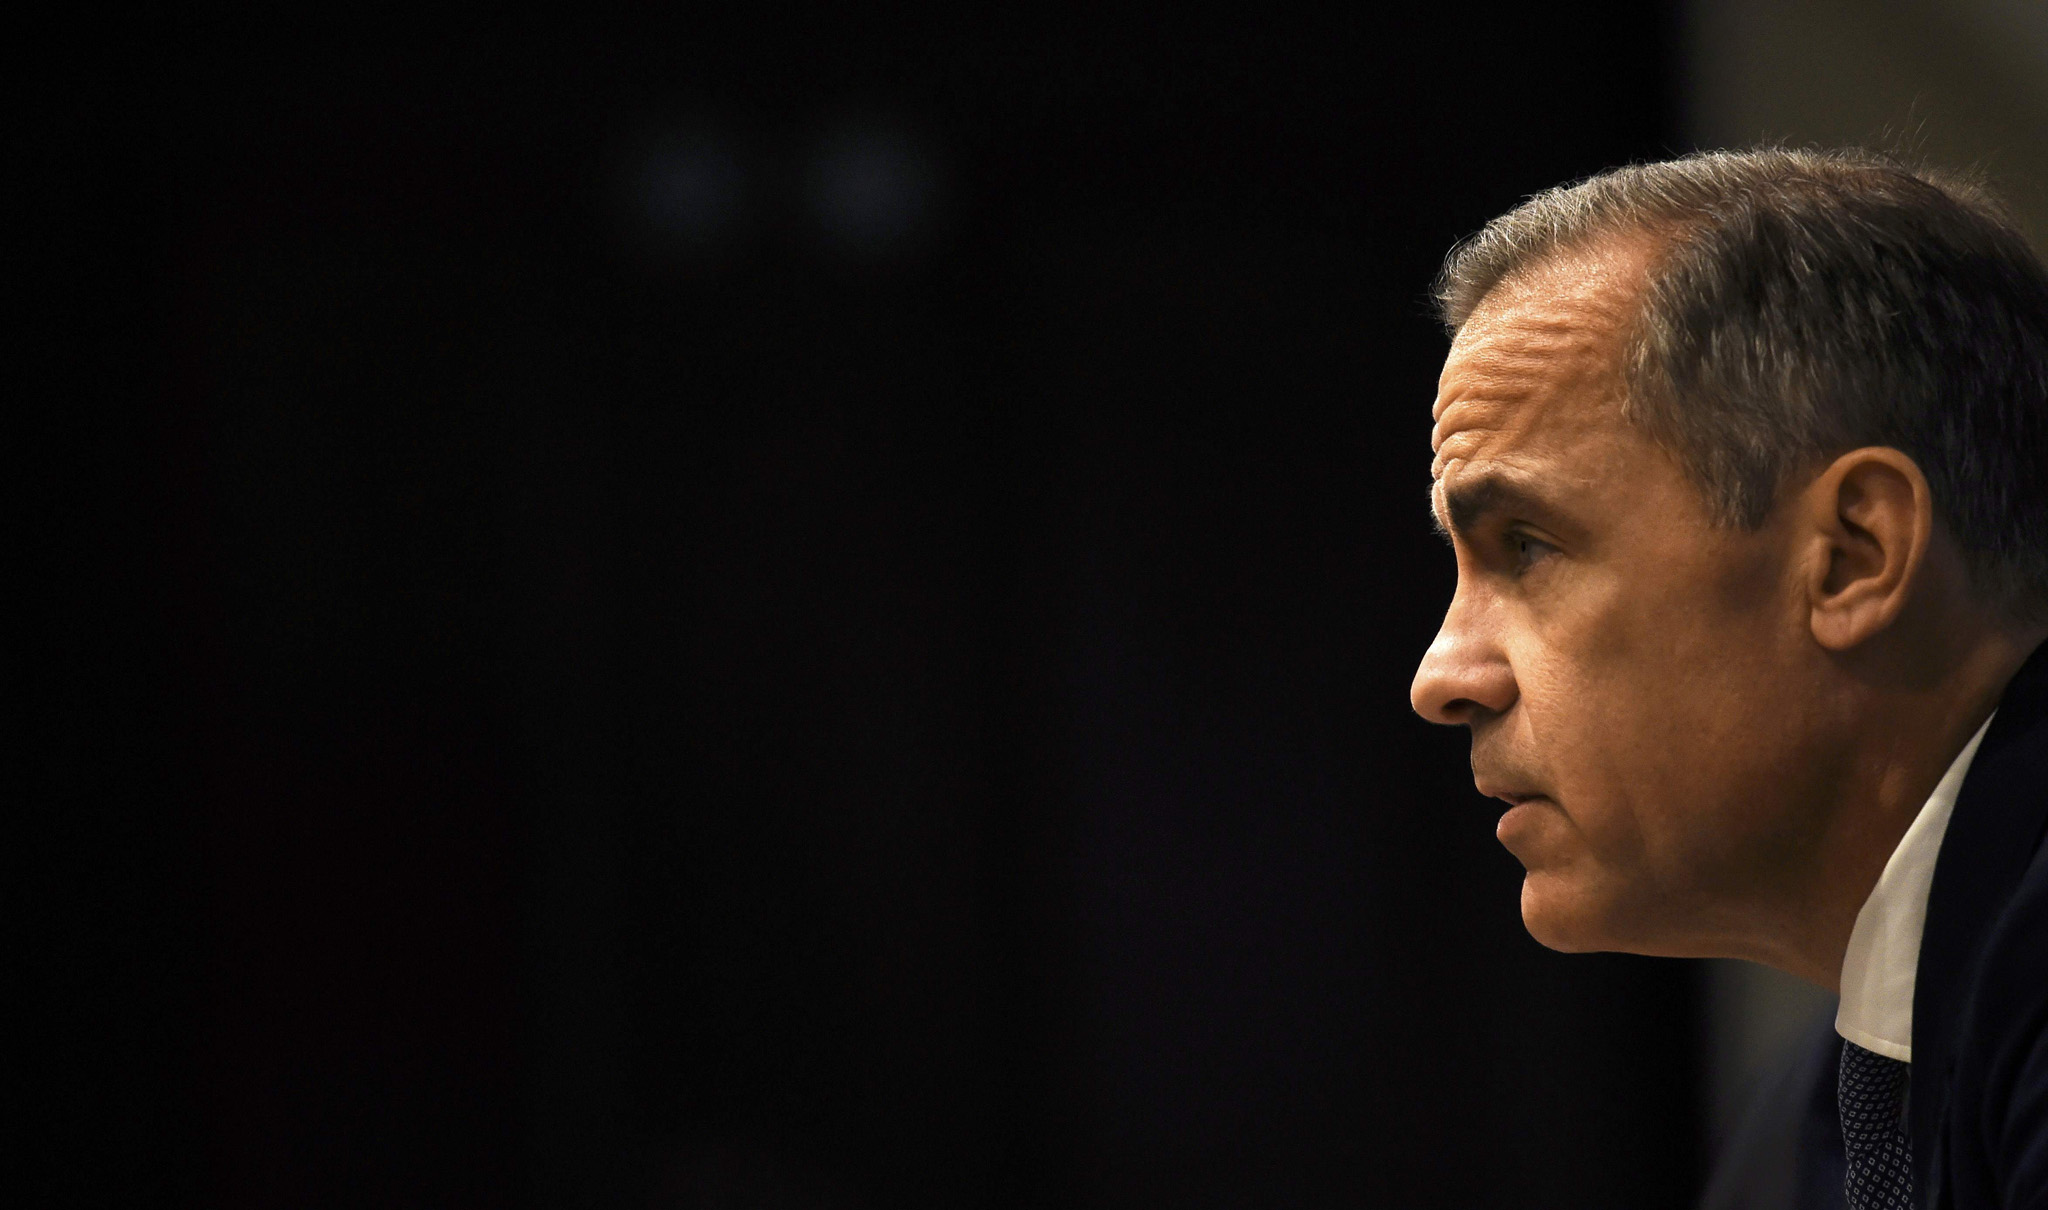 Bank of England governor Mark Carney speaks during a news conference at the Bank of England in London, Britain July 5, 2016. REUTERS/Dylan Martinez